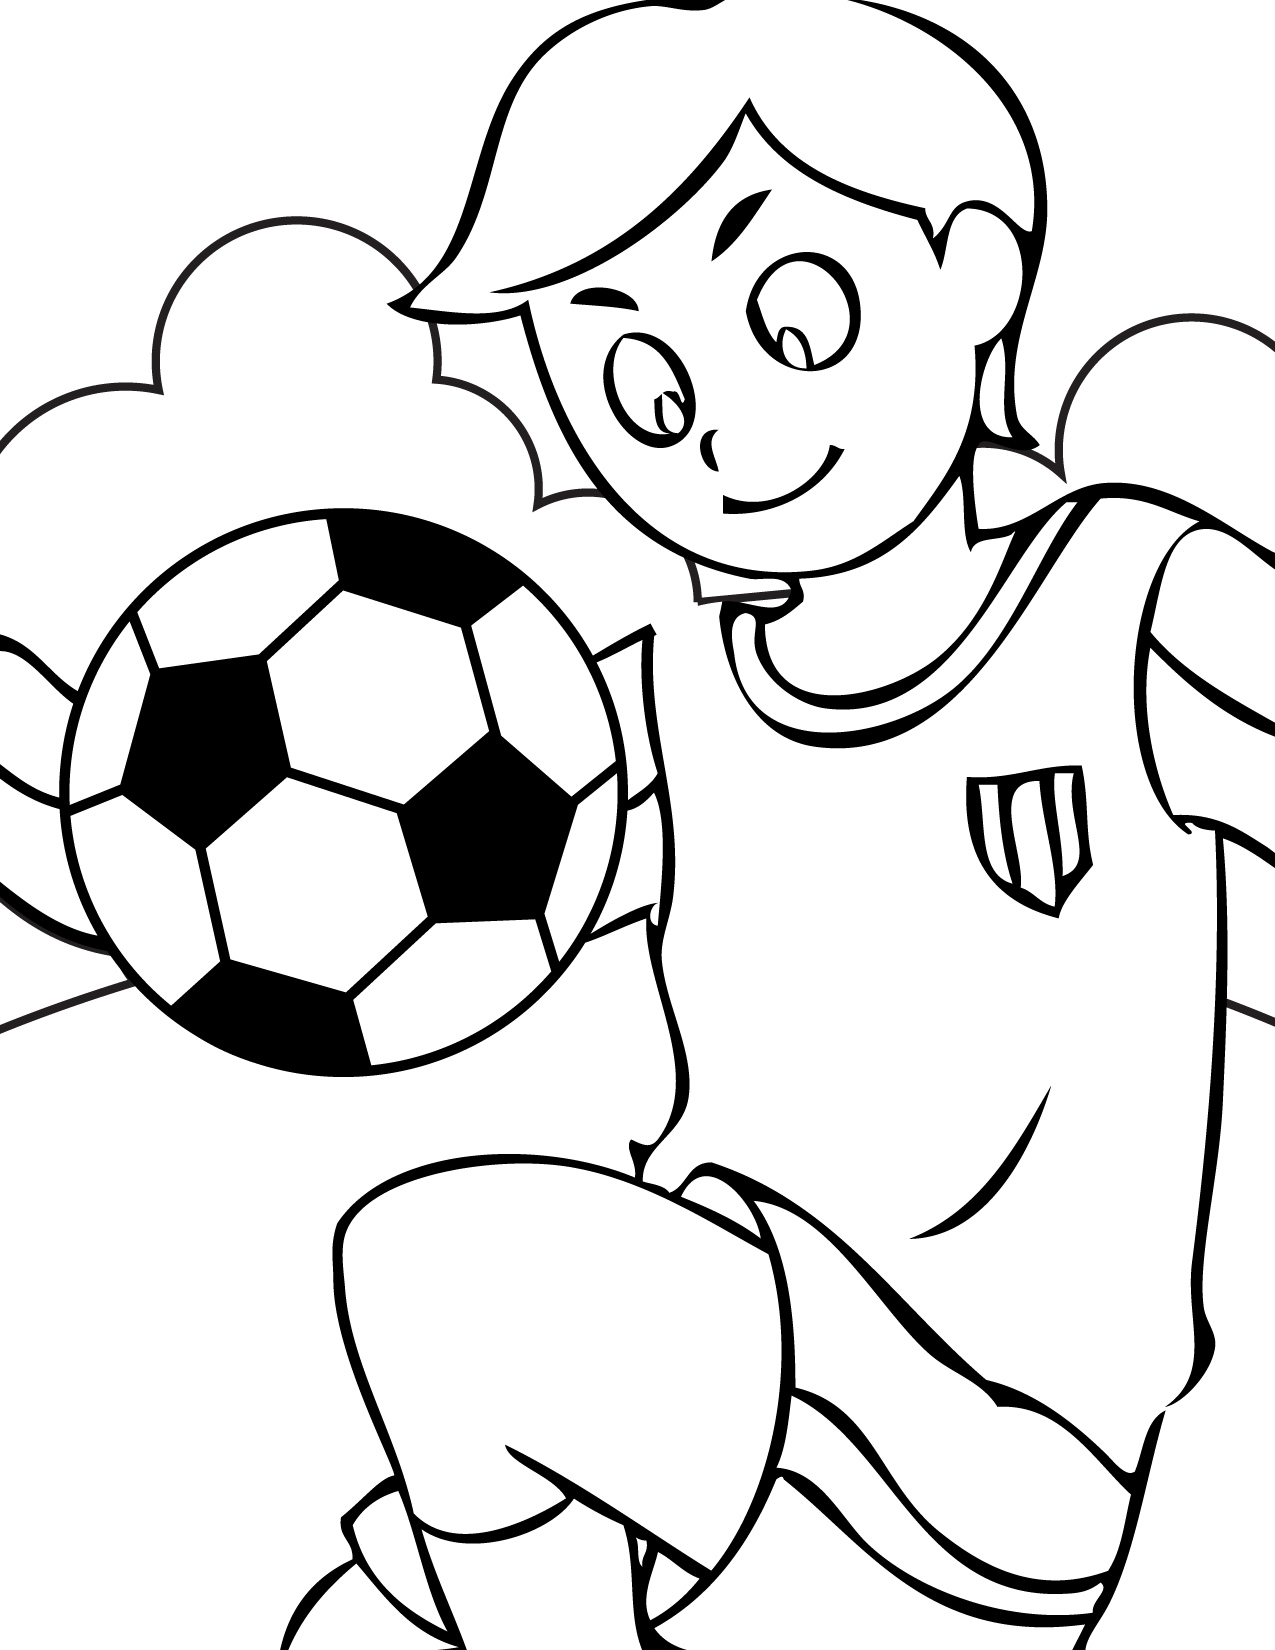 1275x1650 Soccer Coloring Pages Luxury Soccer Coloring Pages Coloring Kids